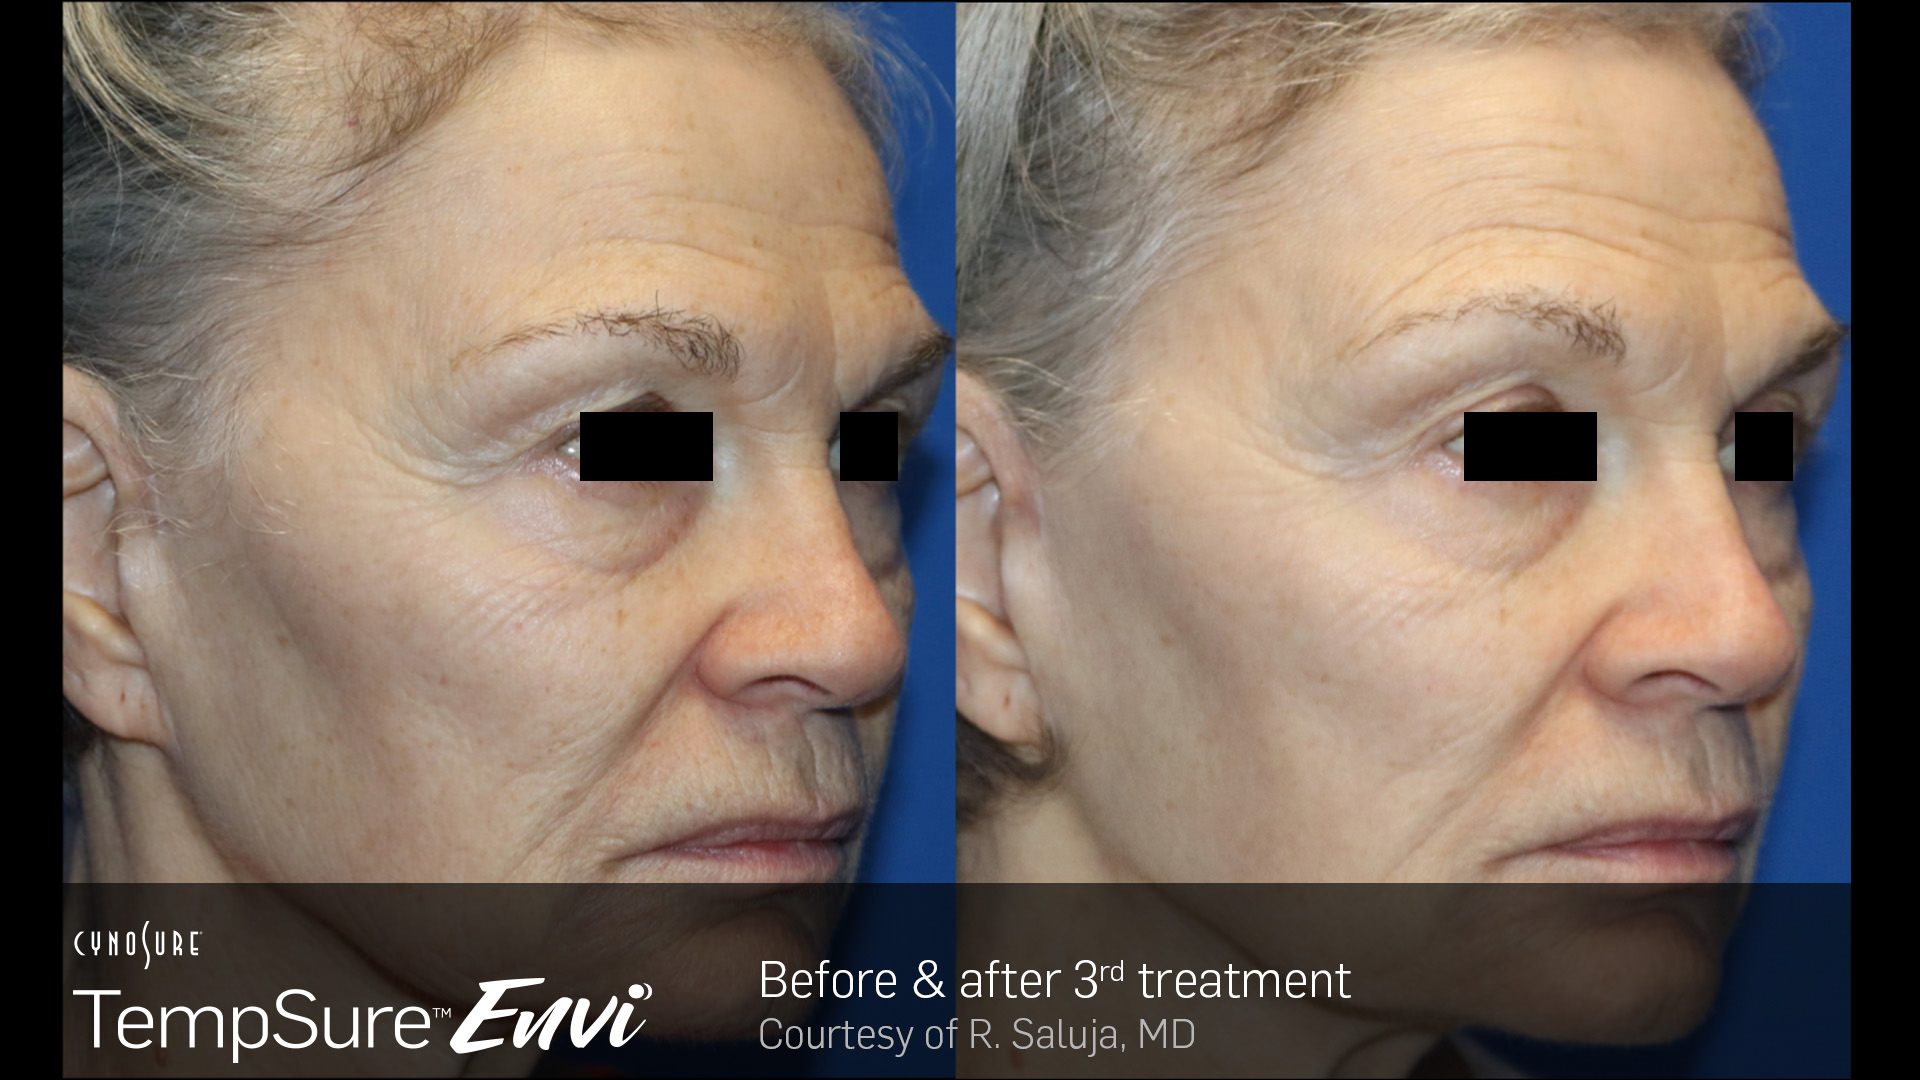 Before and after TempSure Envi results